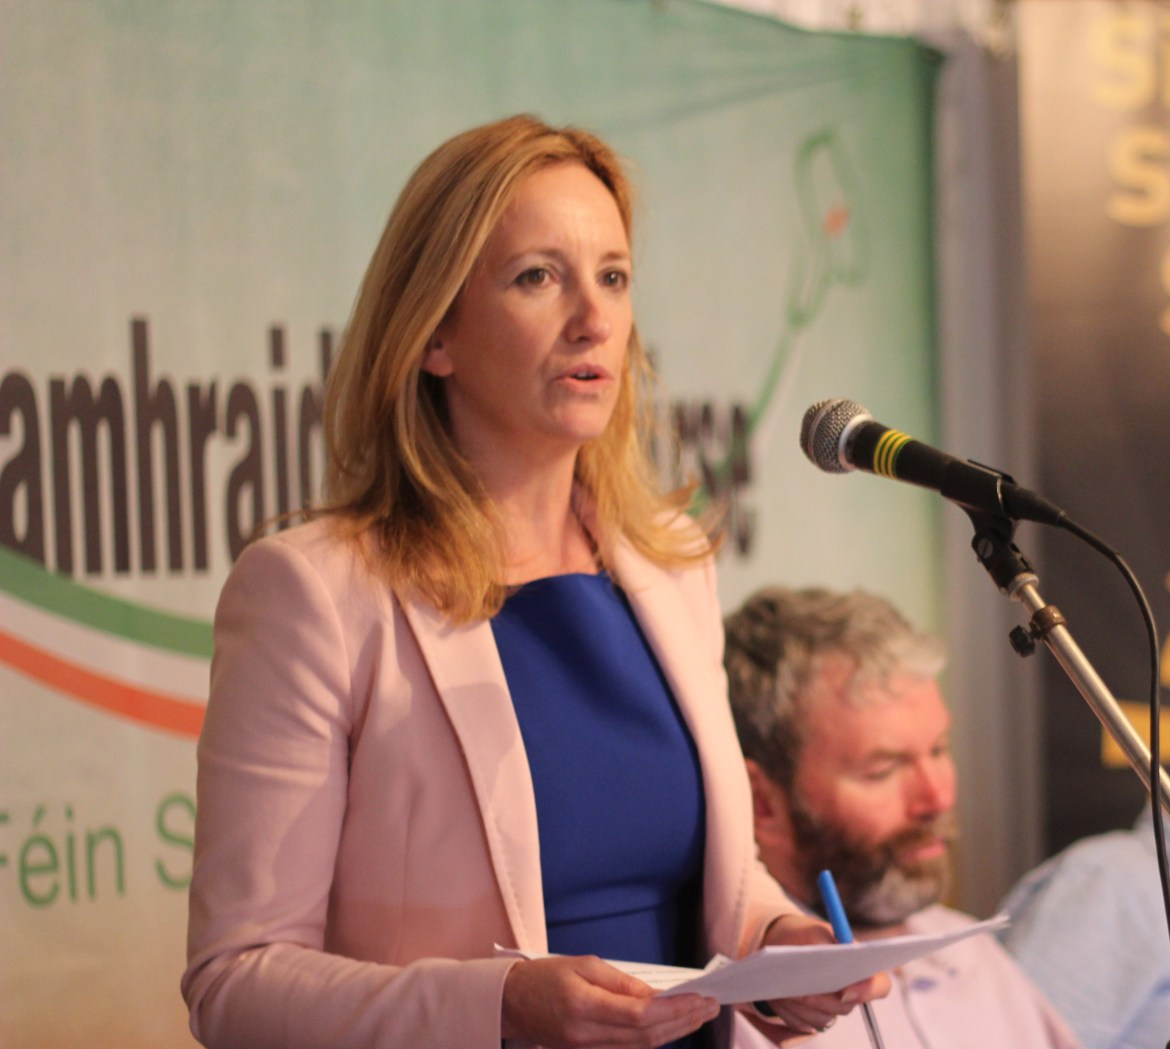 Gemma O'Doherty launches legal proceedings against Village magazine for defamation